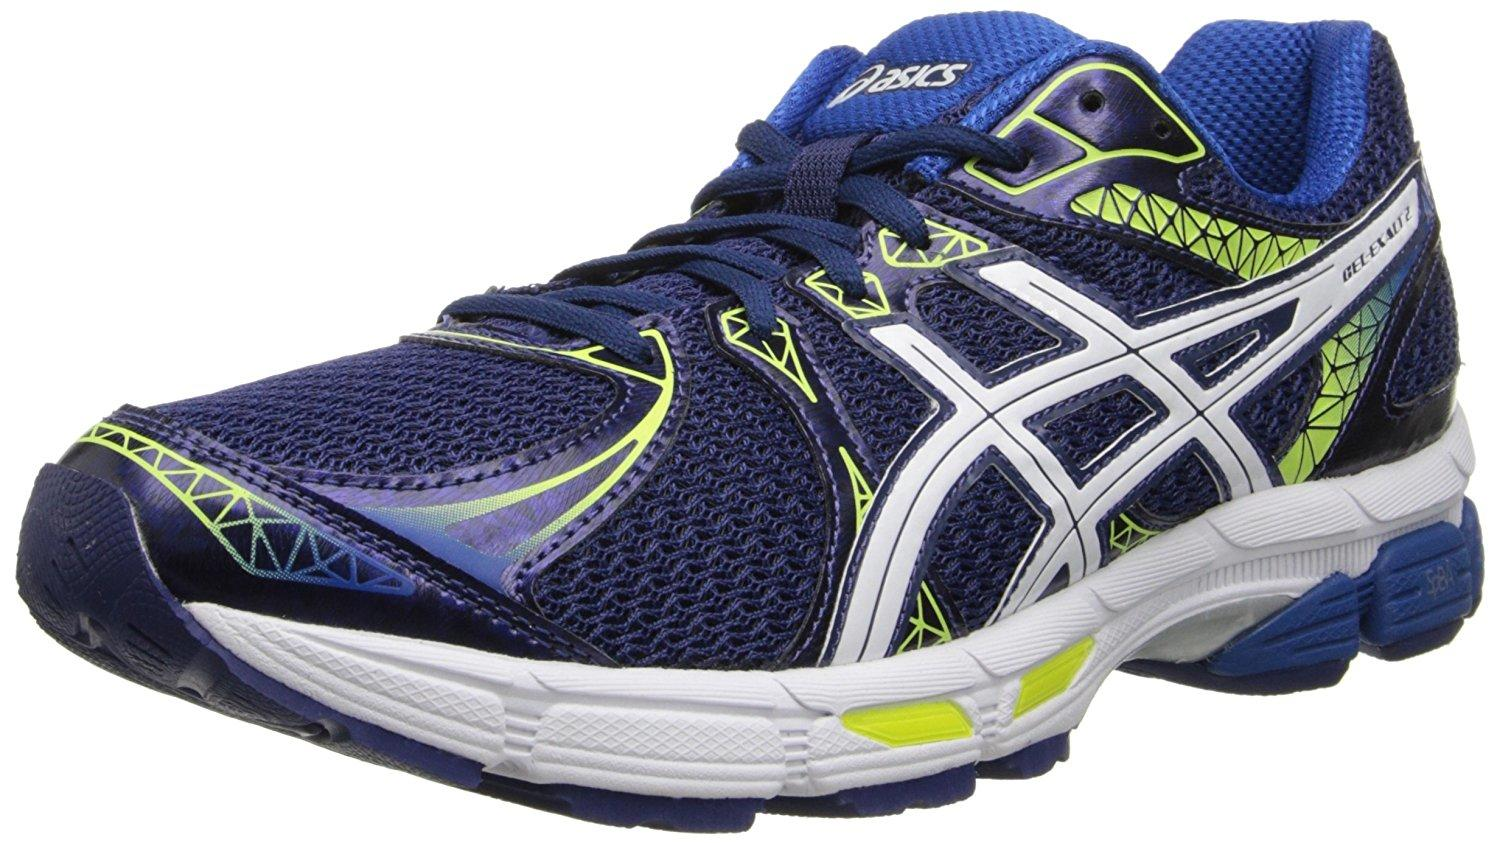 A three quarter perspective of the ASICS Gel Exalt 2 running shoe